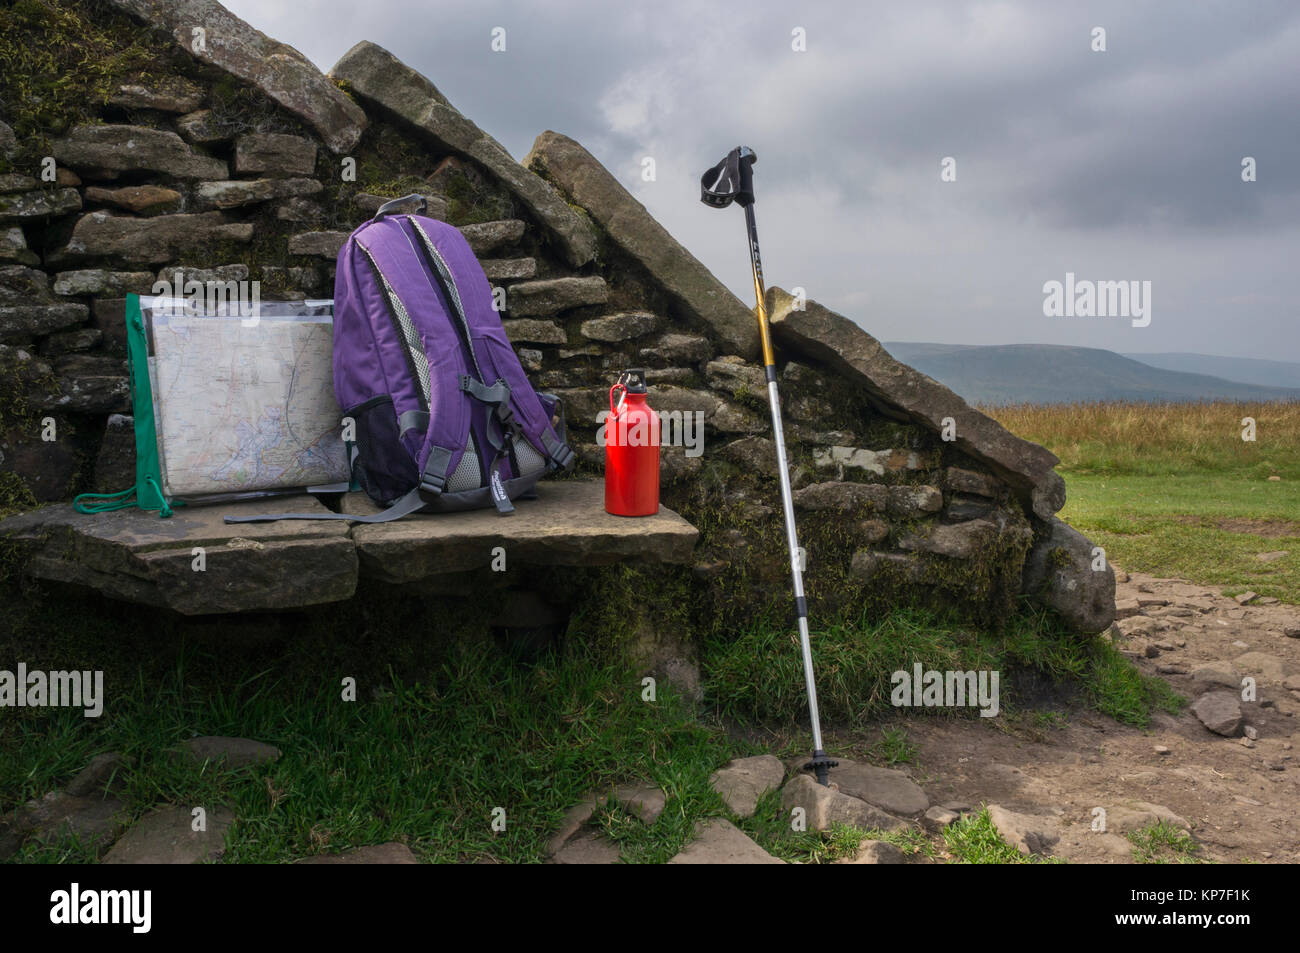 Stone windbreak shelter & seat on summit of Whernside, with map in holder, rucksack,red  water bottle & - Stock Image